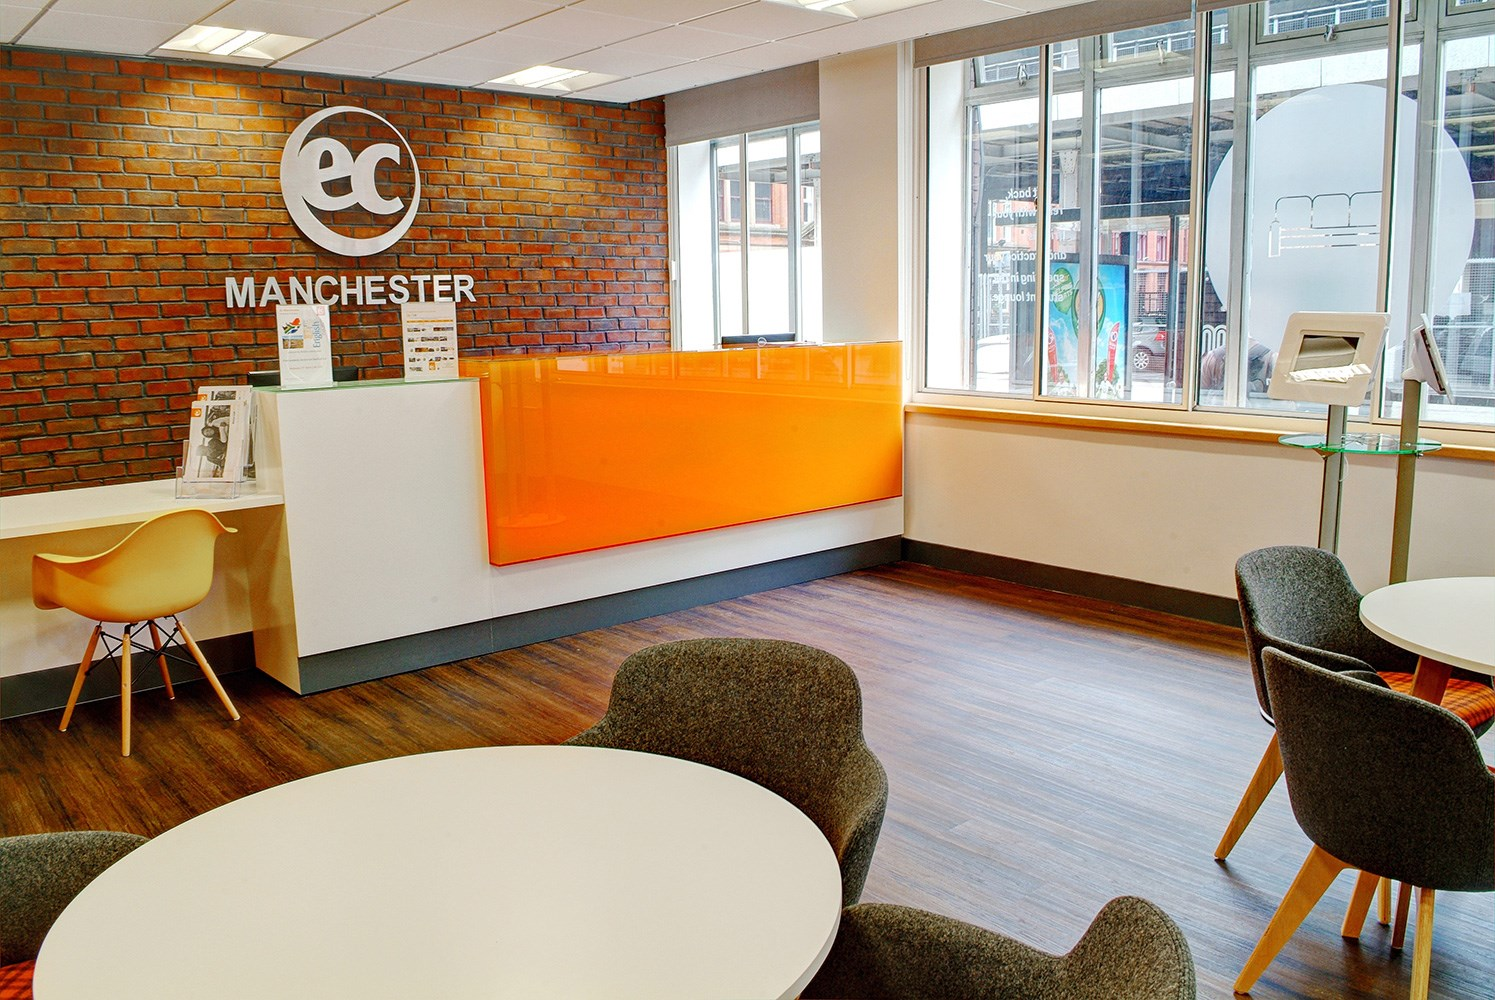 ЕС English Language Centres Manchester Манчестер Великобритания